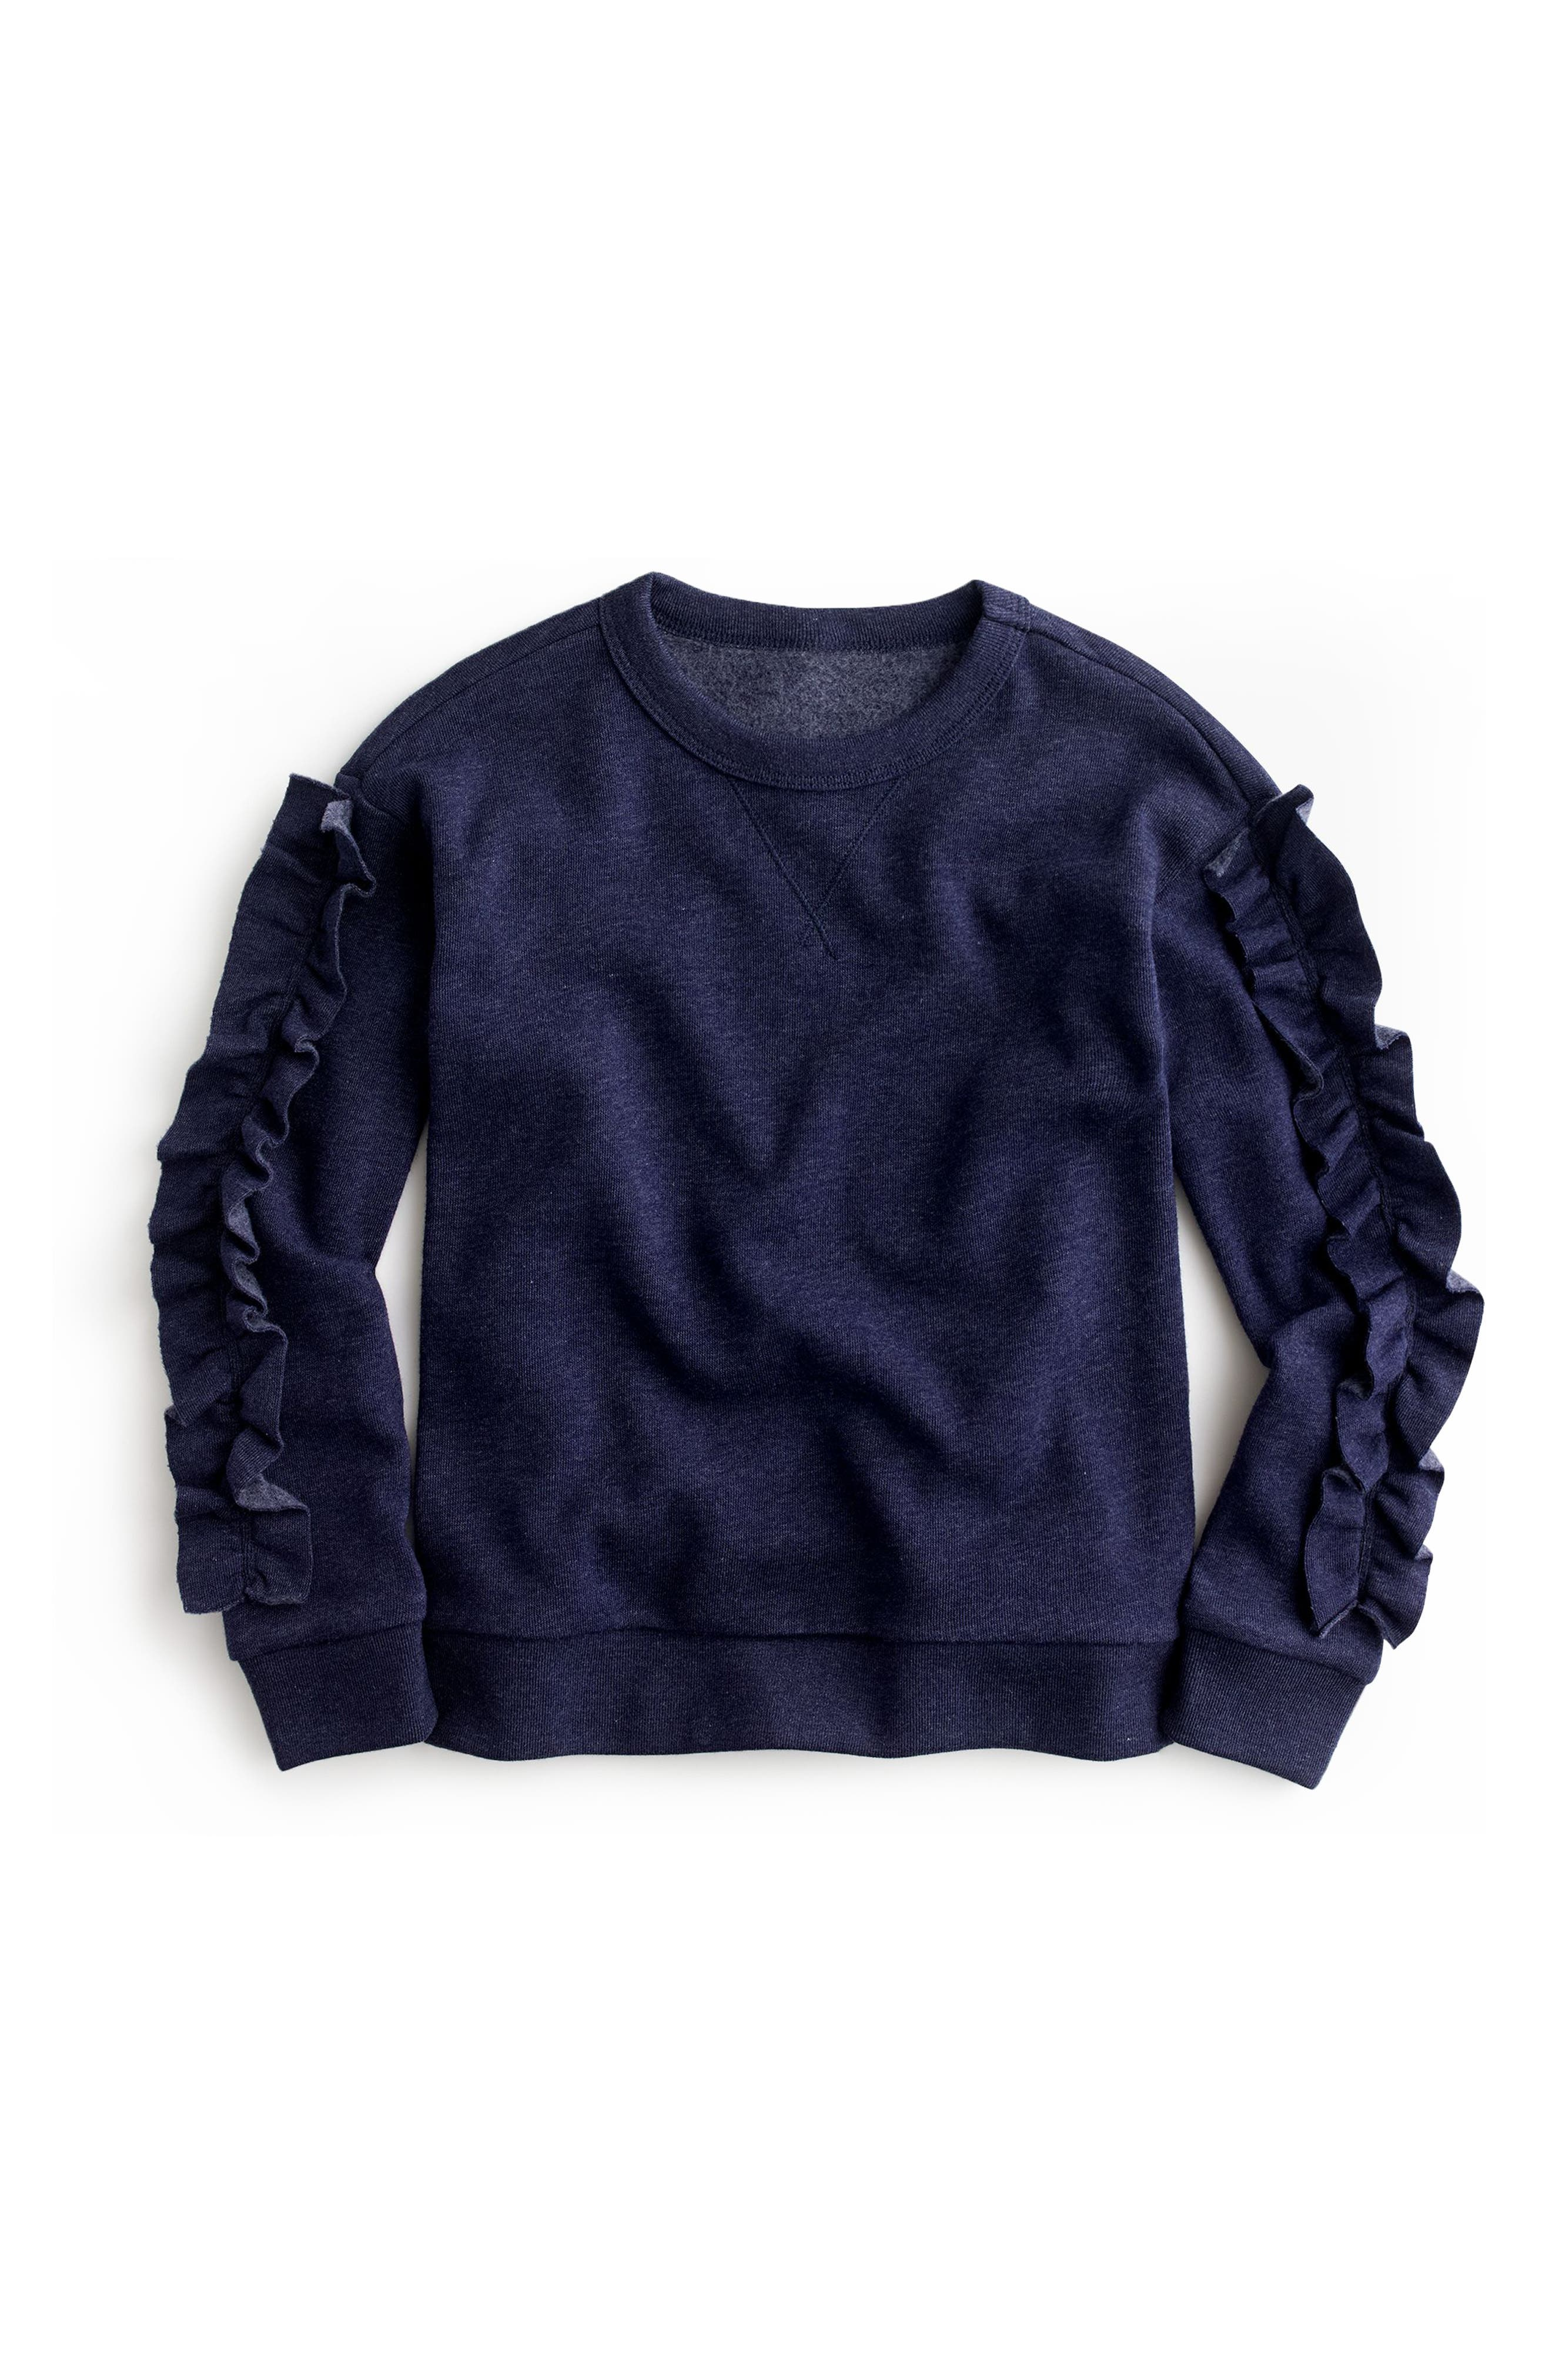 Ruffle Trim Sweatshirt,                             Main thumbnail 1, color,                             Dark Ink